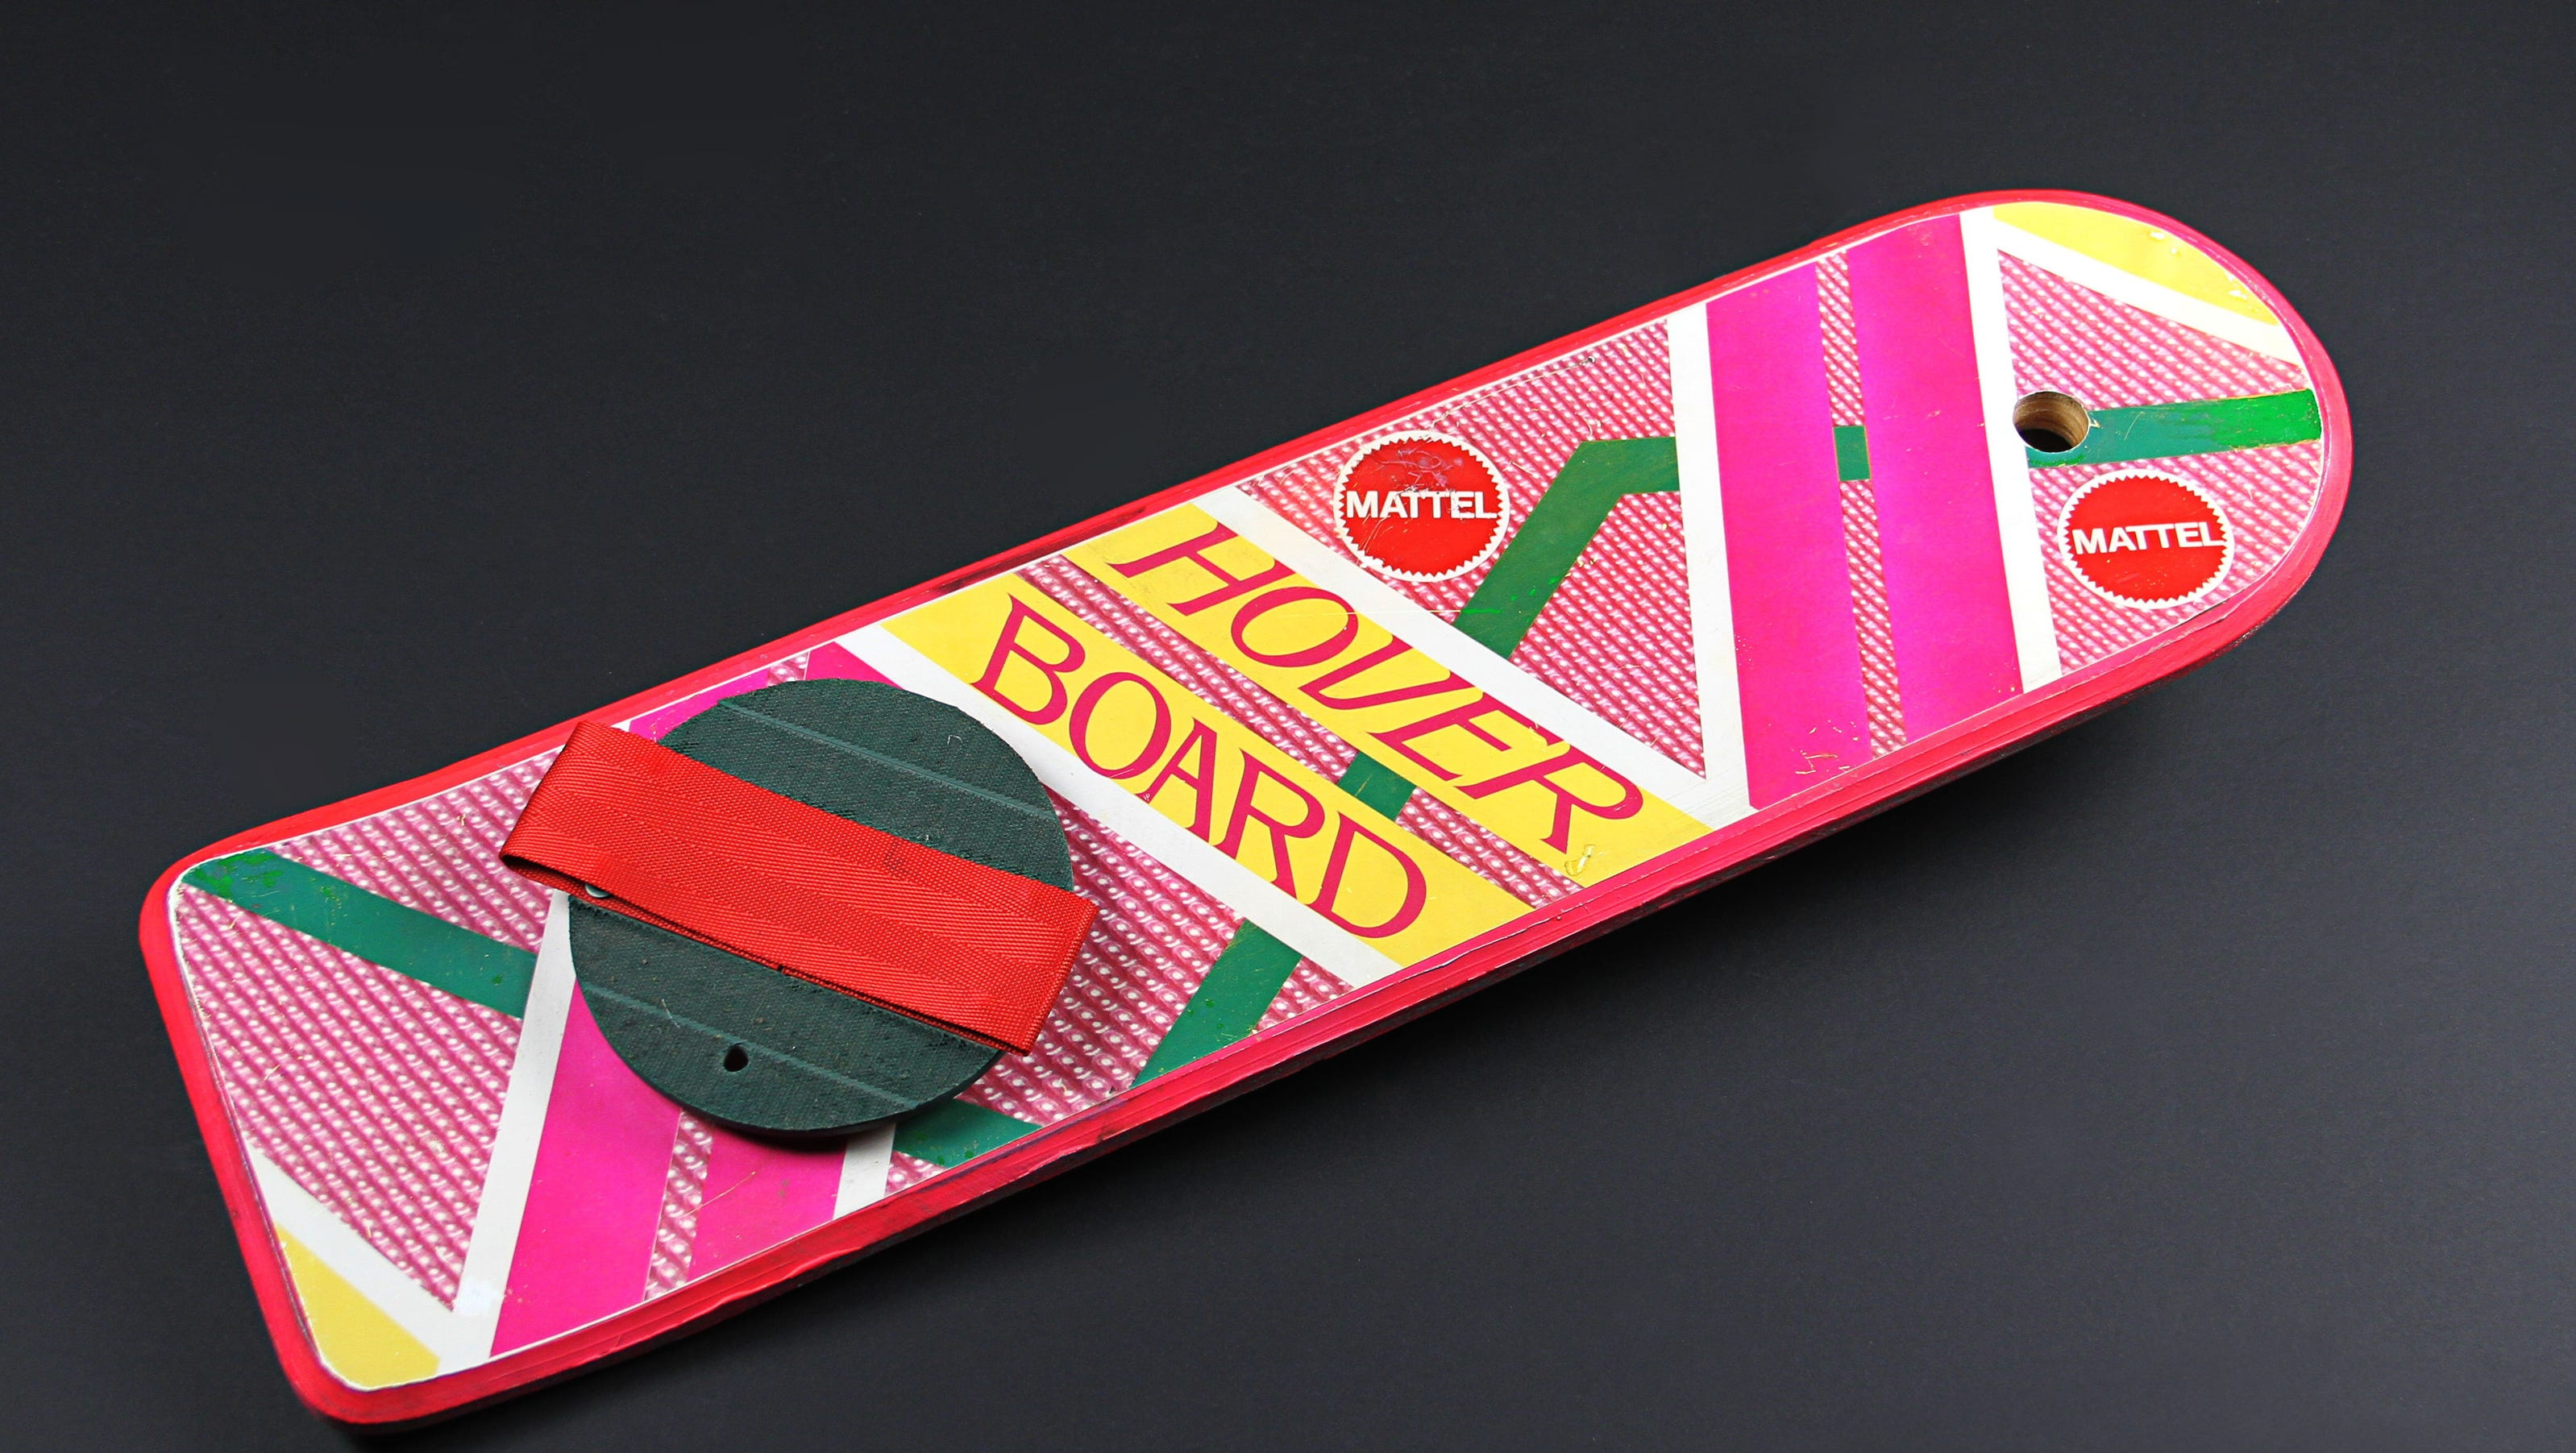 Back To The Future Hoverboard Up For Auction